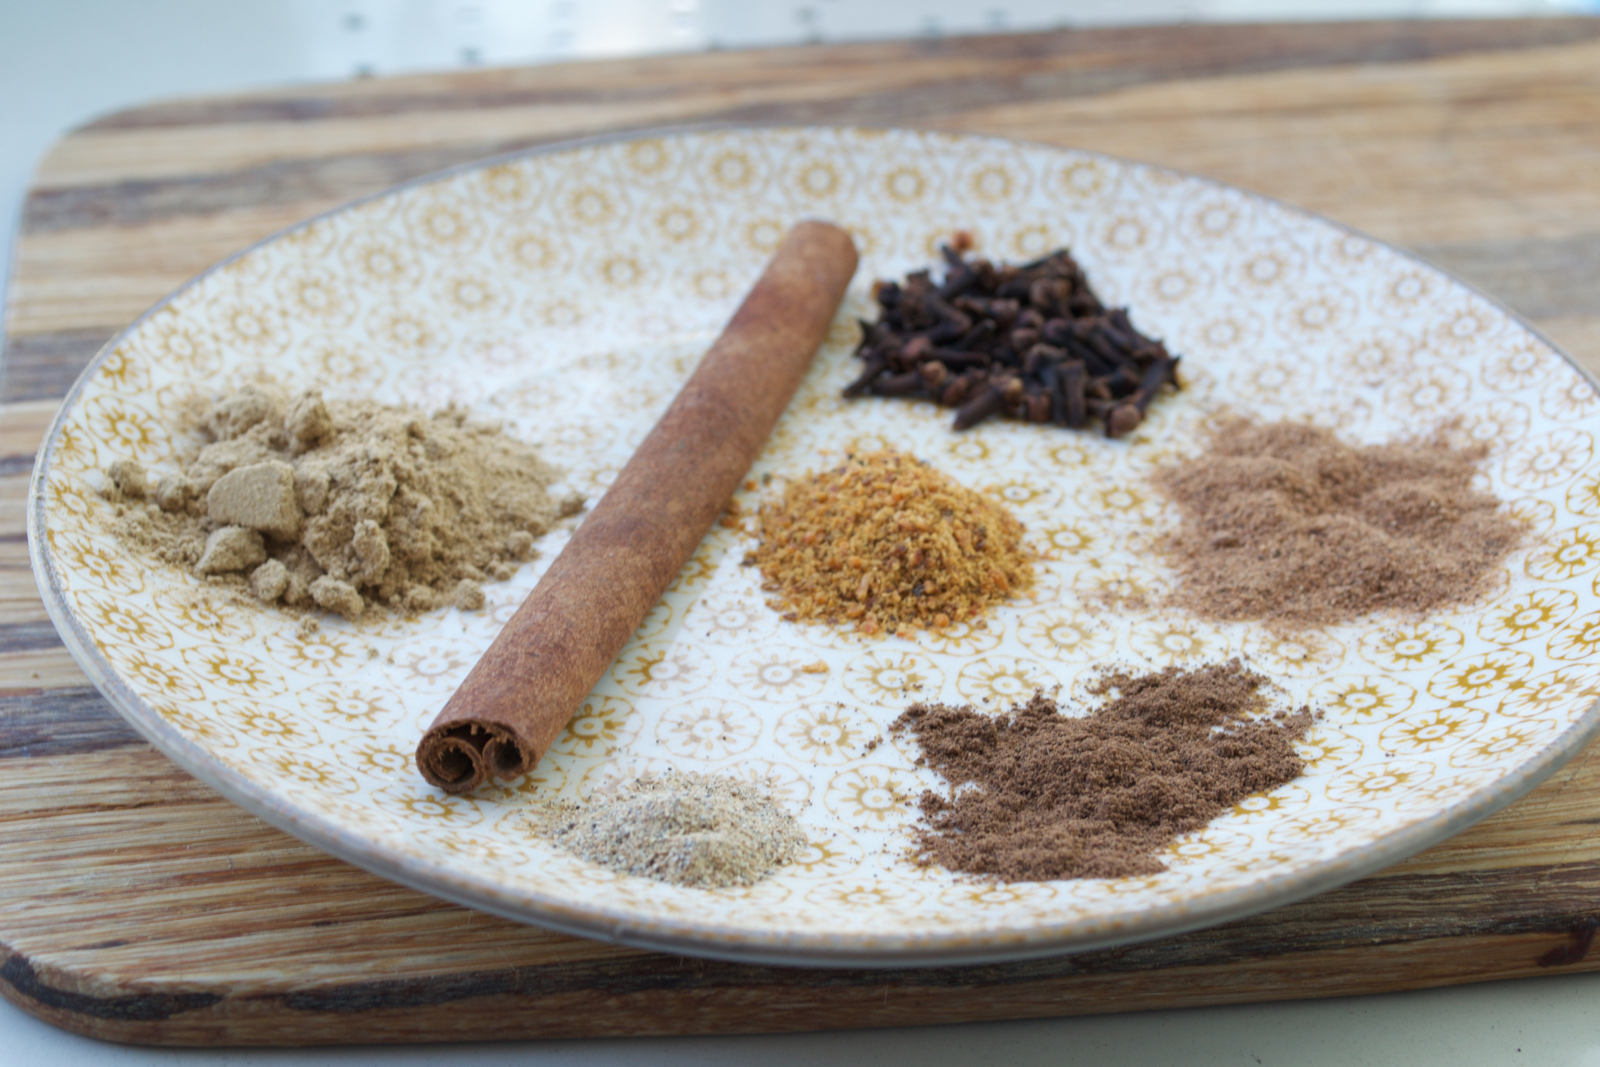 pumpkin spice mix, autumn spices, winter spices, dried spices duck, spiced duck, homemade pumpkin spice, spices with pumpkin, sweet spice duck